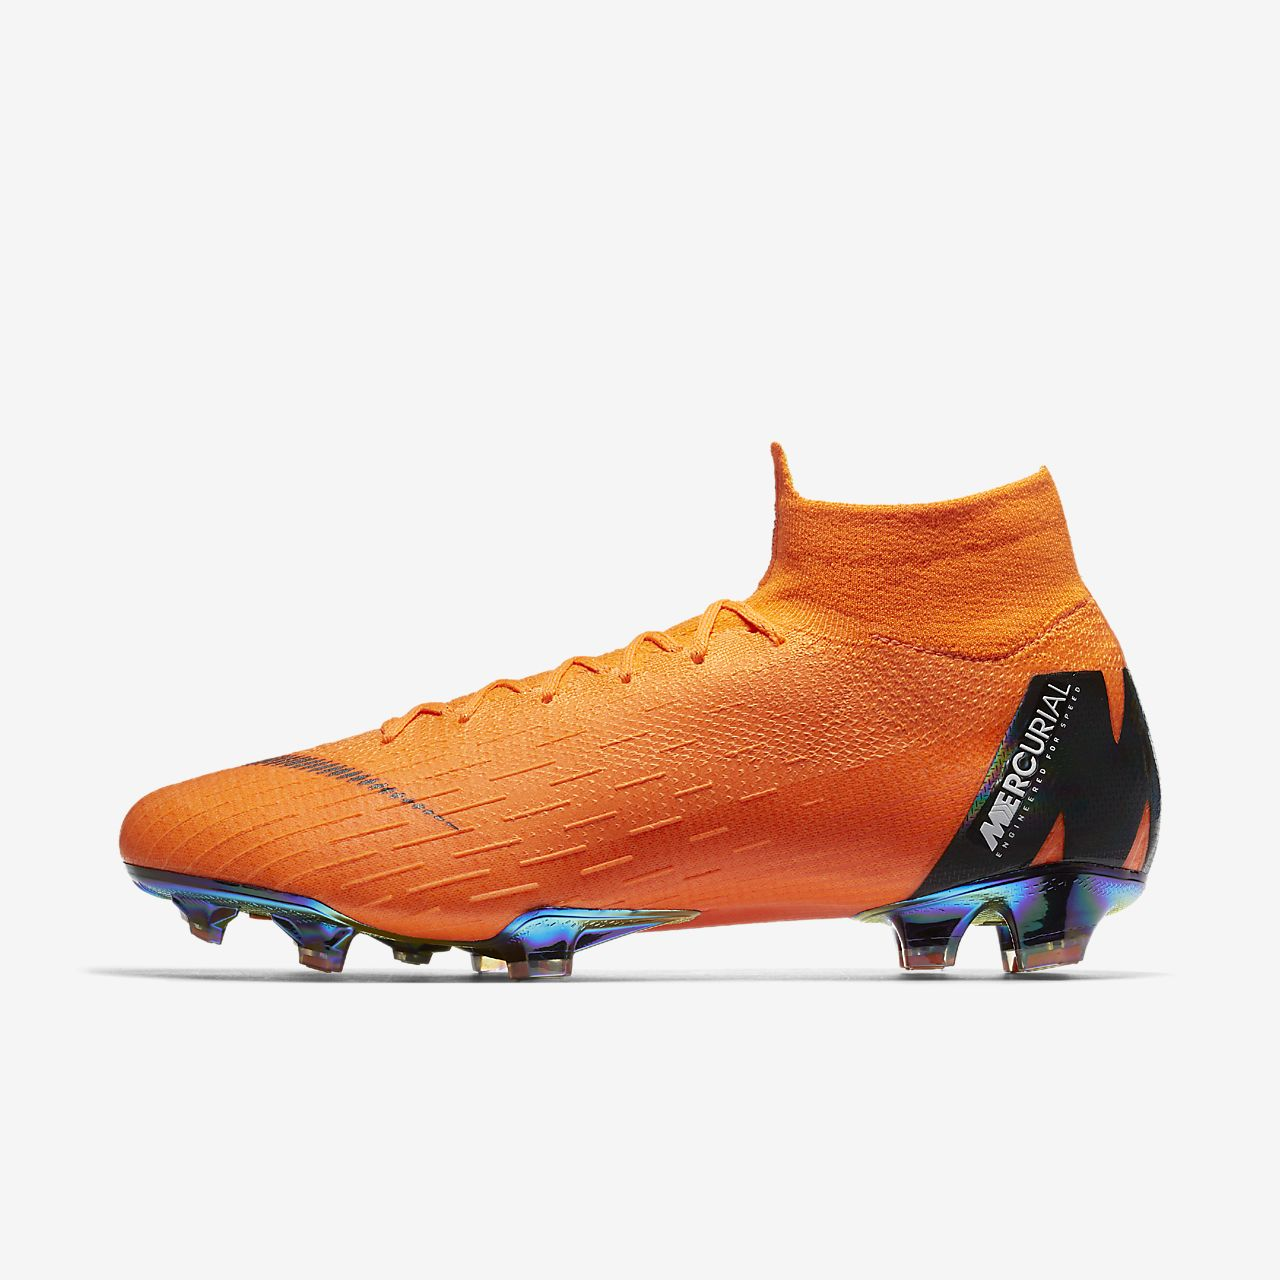 Nike Superfly   Nike Sneakers Online at Best Prices  b8fab6f15